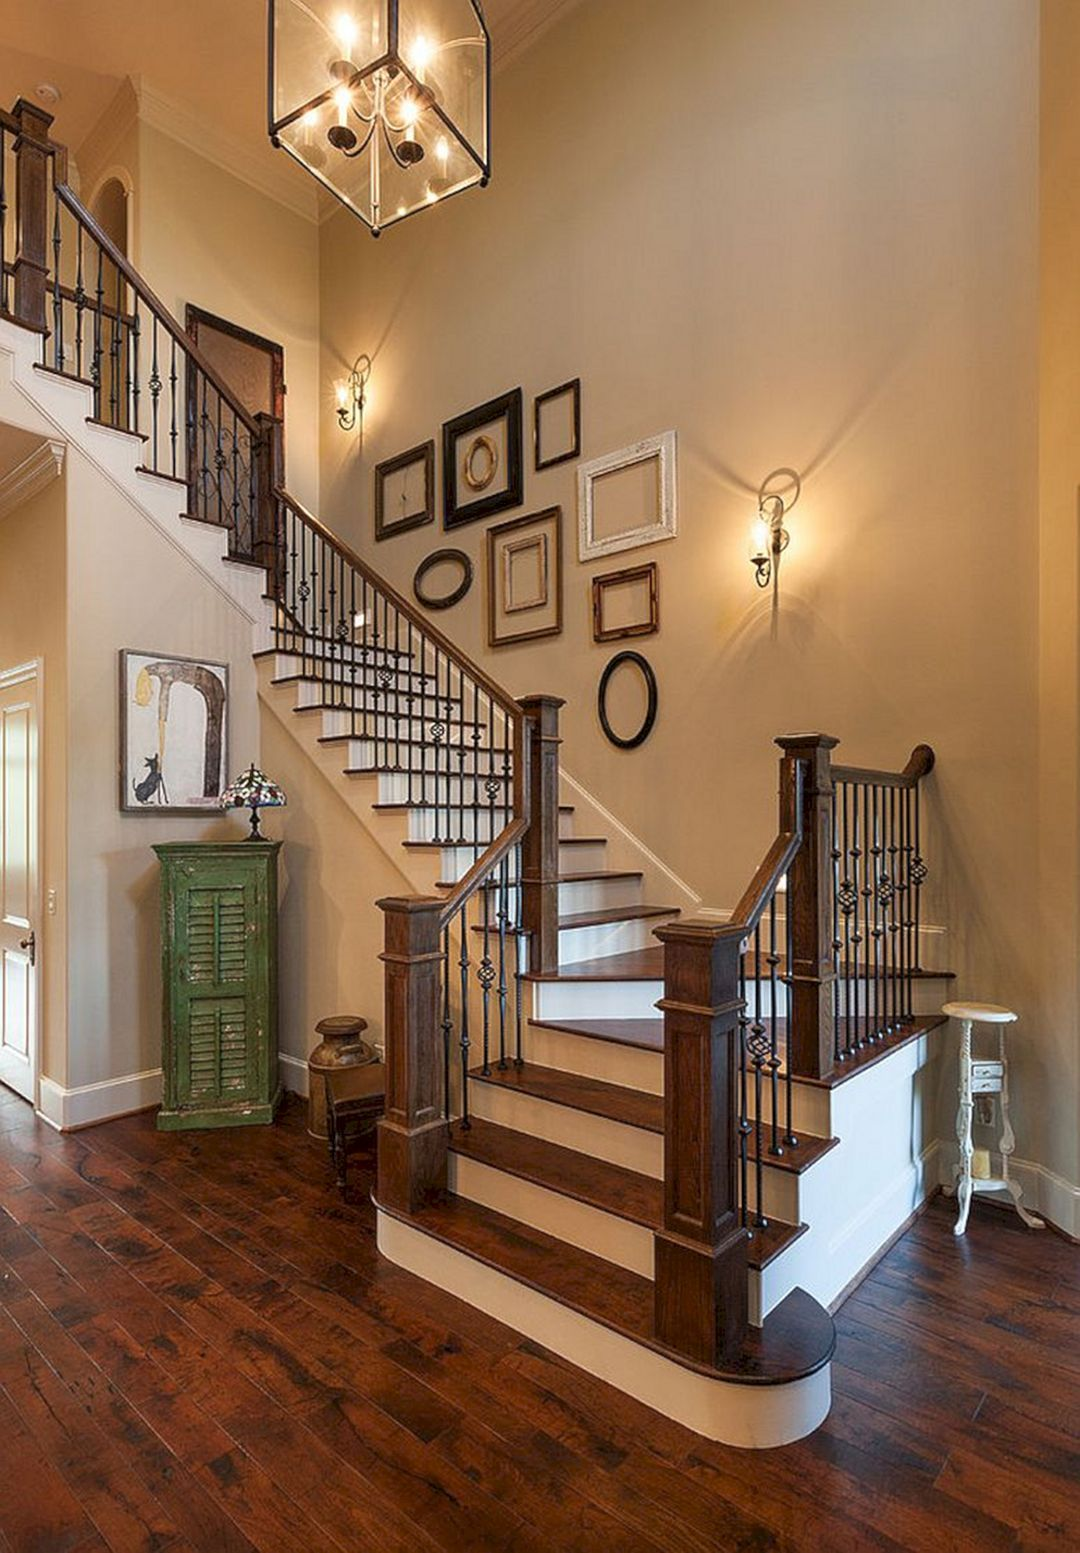 15+ Awesome Arranging Pictures On A Stair Wall Ideas ...